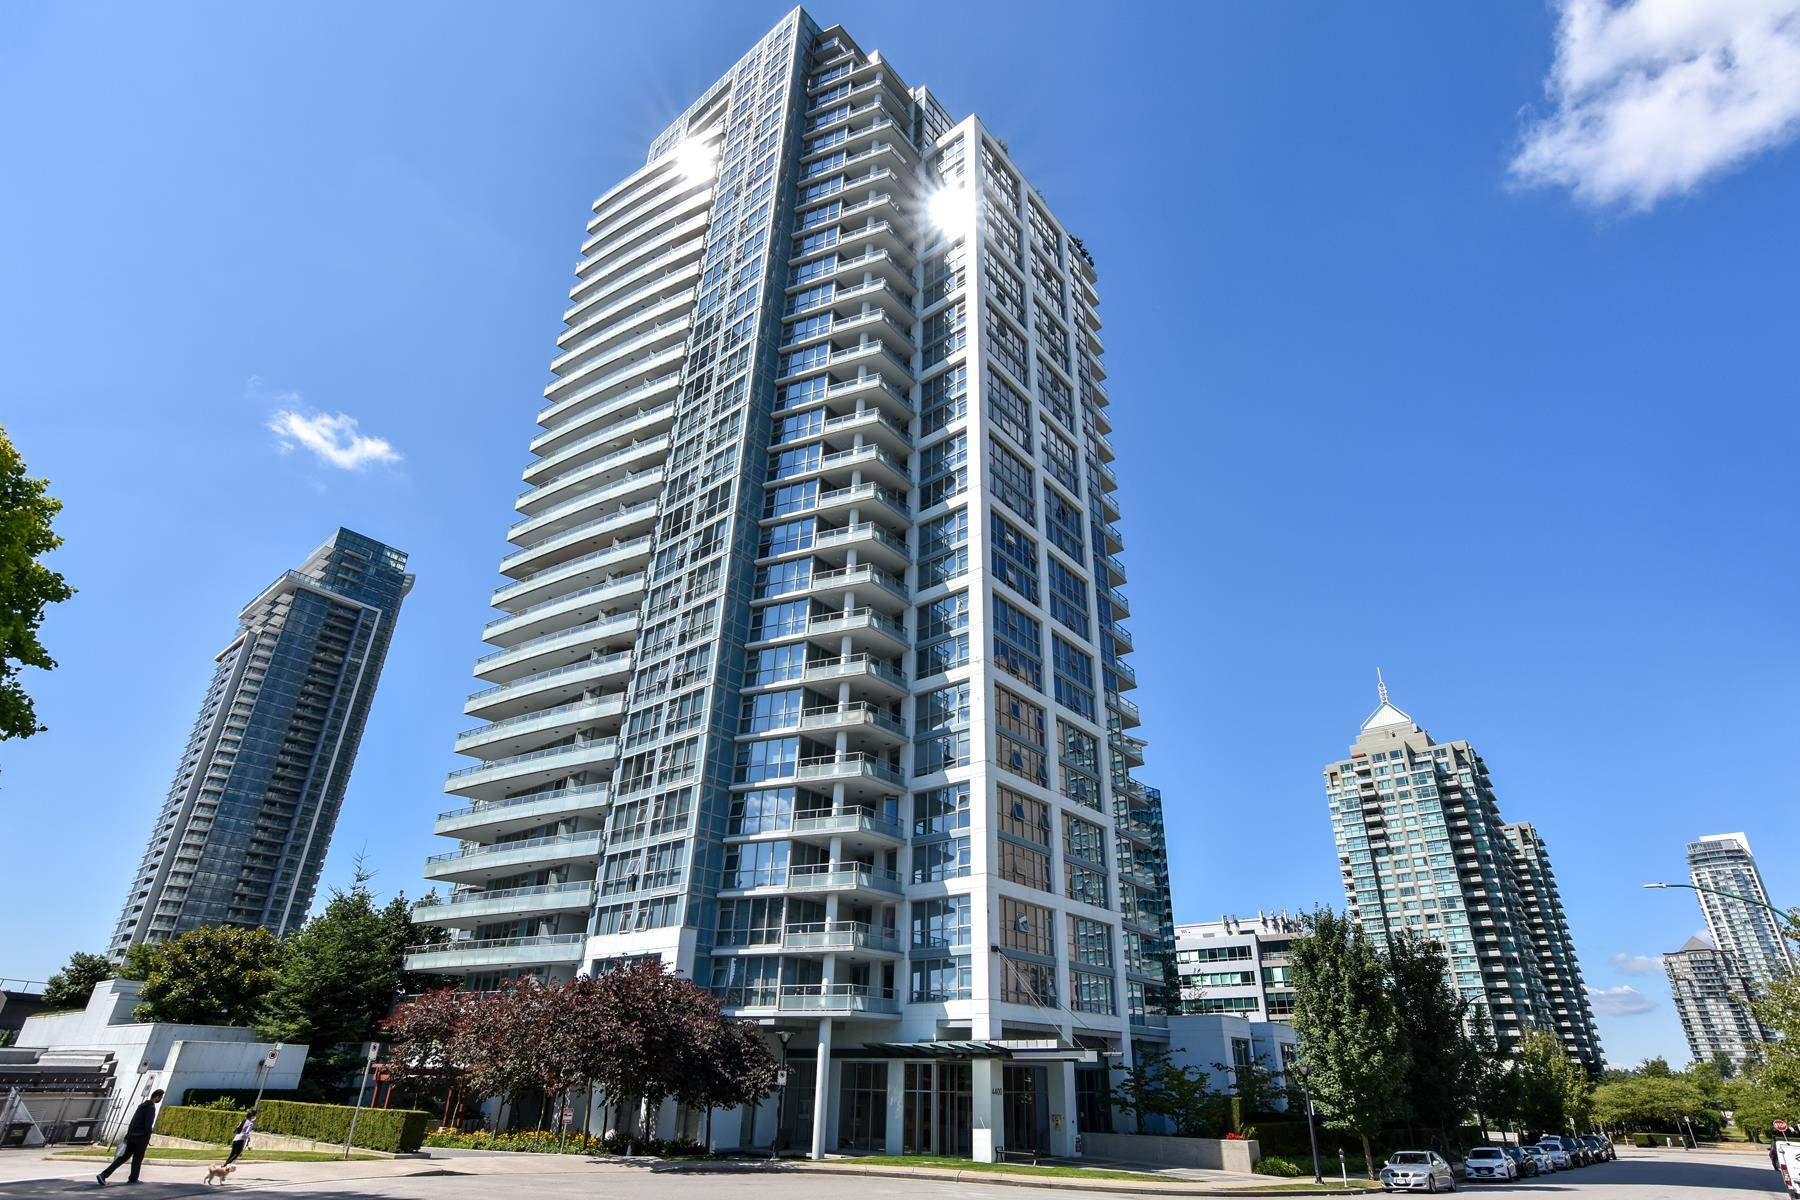 2001 4400 BUCHANAN STREET - Brentwood Park Apartment/Condo for sale, 2 Bedrooms (R2604688) - #1